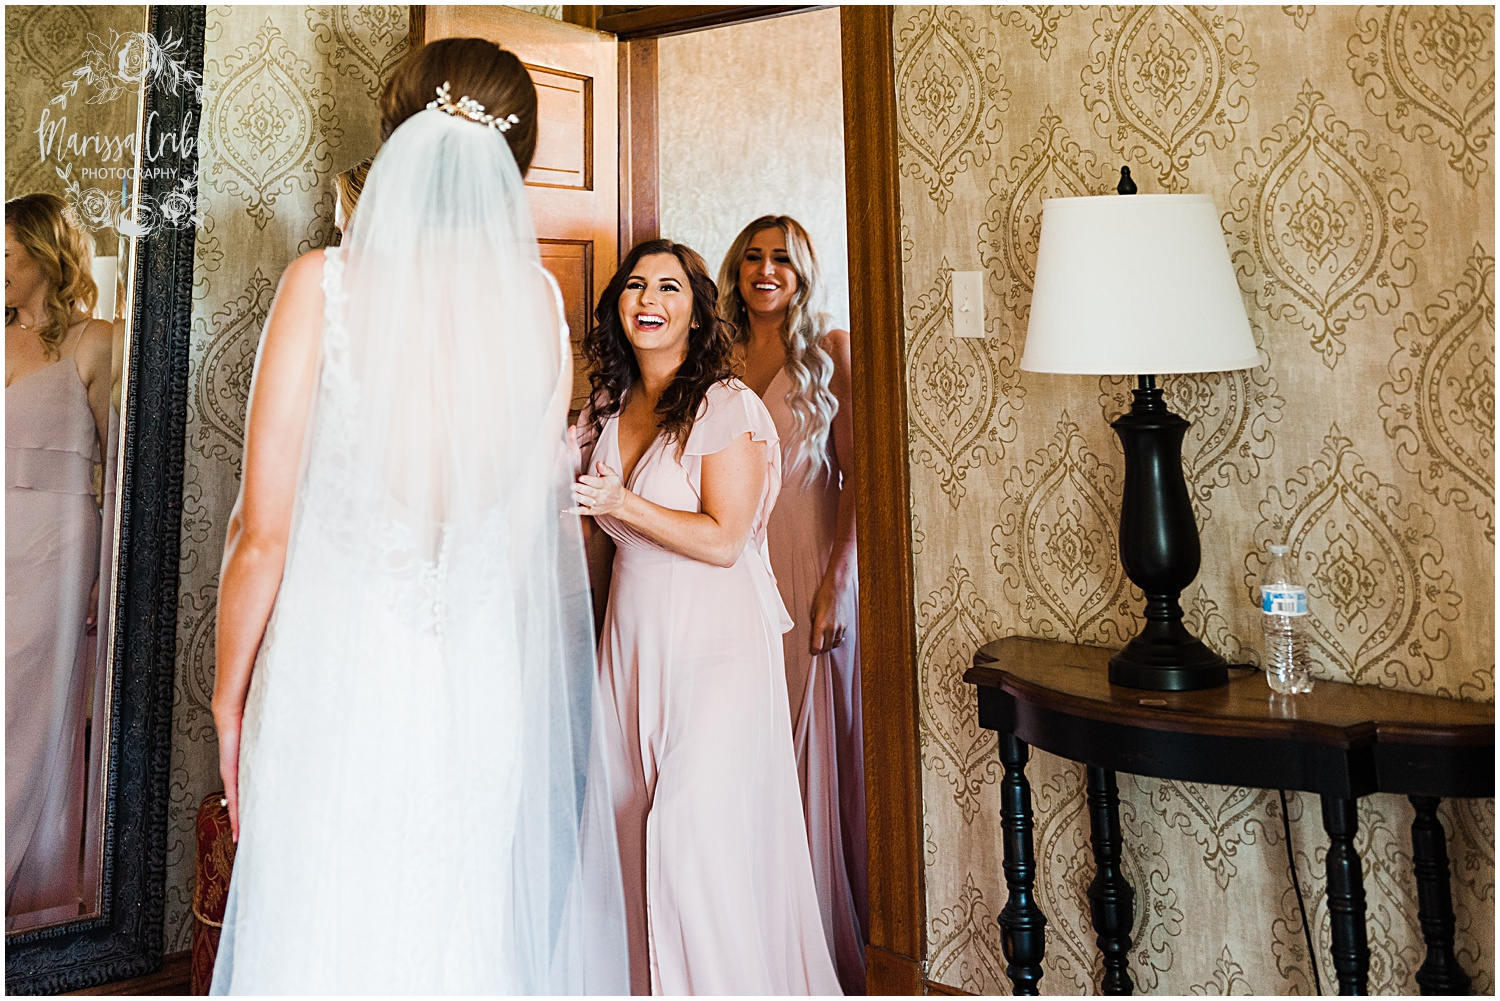 JESSICA & MARK MARRIED SNEAK PEEKS | 1890 EVENT SPACE WEDDING | MARISSA CRIBBS PHOTOGRAPHY_7797.jpg